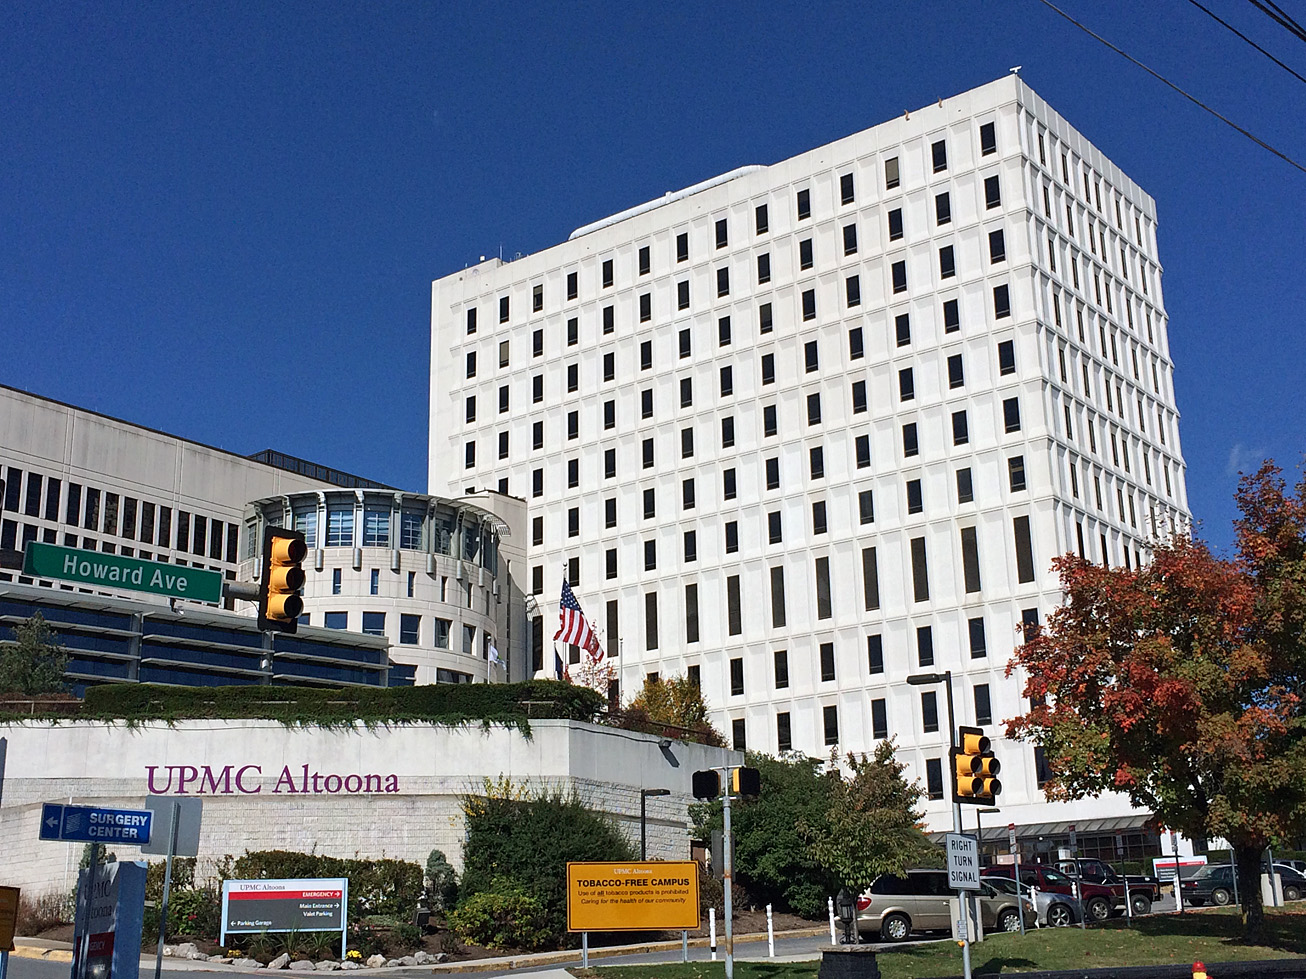 UPMC Altoona - Wikipedia